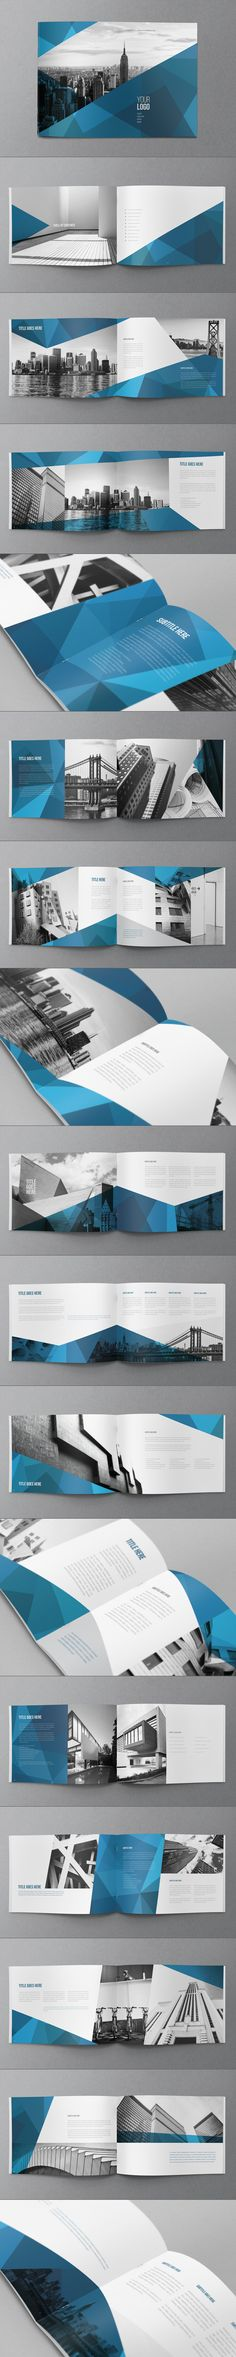 Abstract Architecture Brochure by Abra Design, via Behance // identity, branding, graphic Graphisches Design, Buch Design, Layout Design, Print Design, Design Elements, Modern Design, Corporate Design, Branding Design, Design Brochure